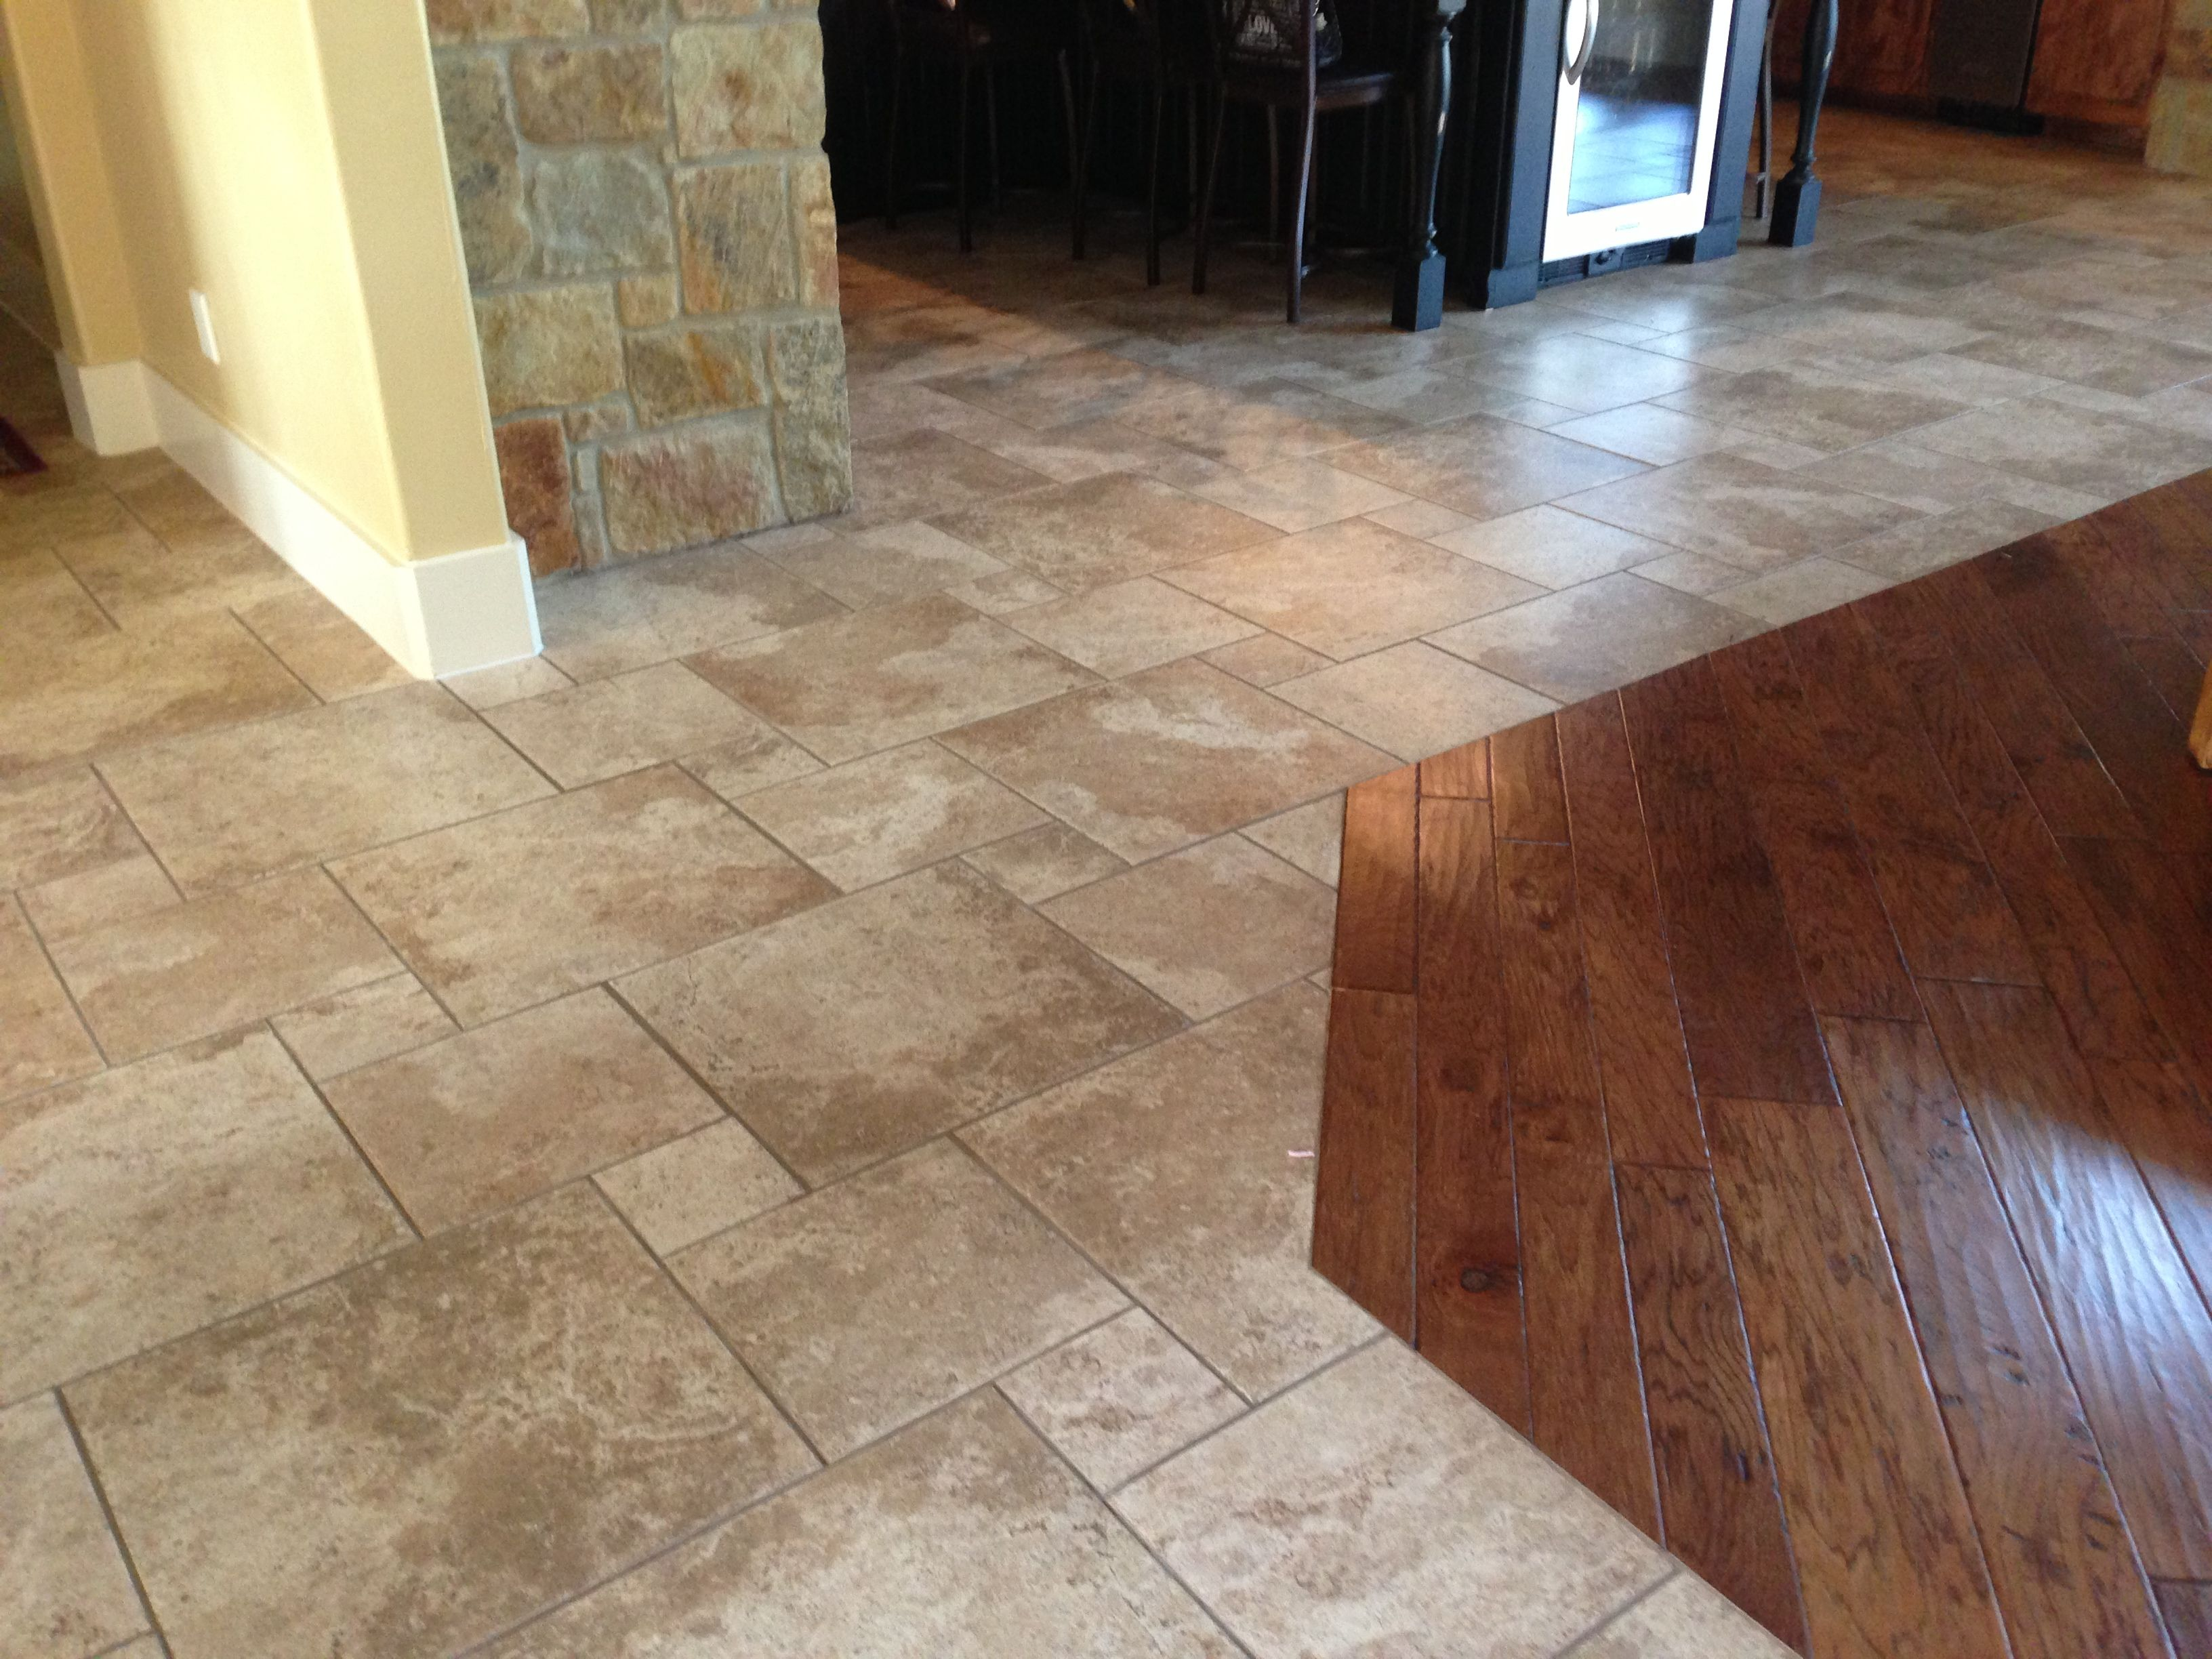 Infinity floor no transition from tile to wood new for Hardwood floor tile kitchen